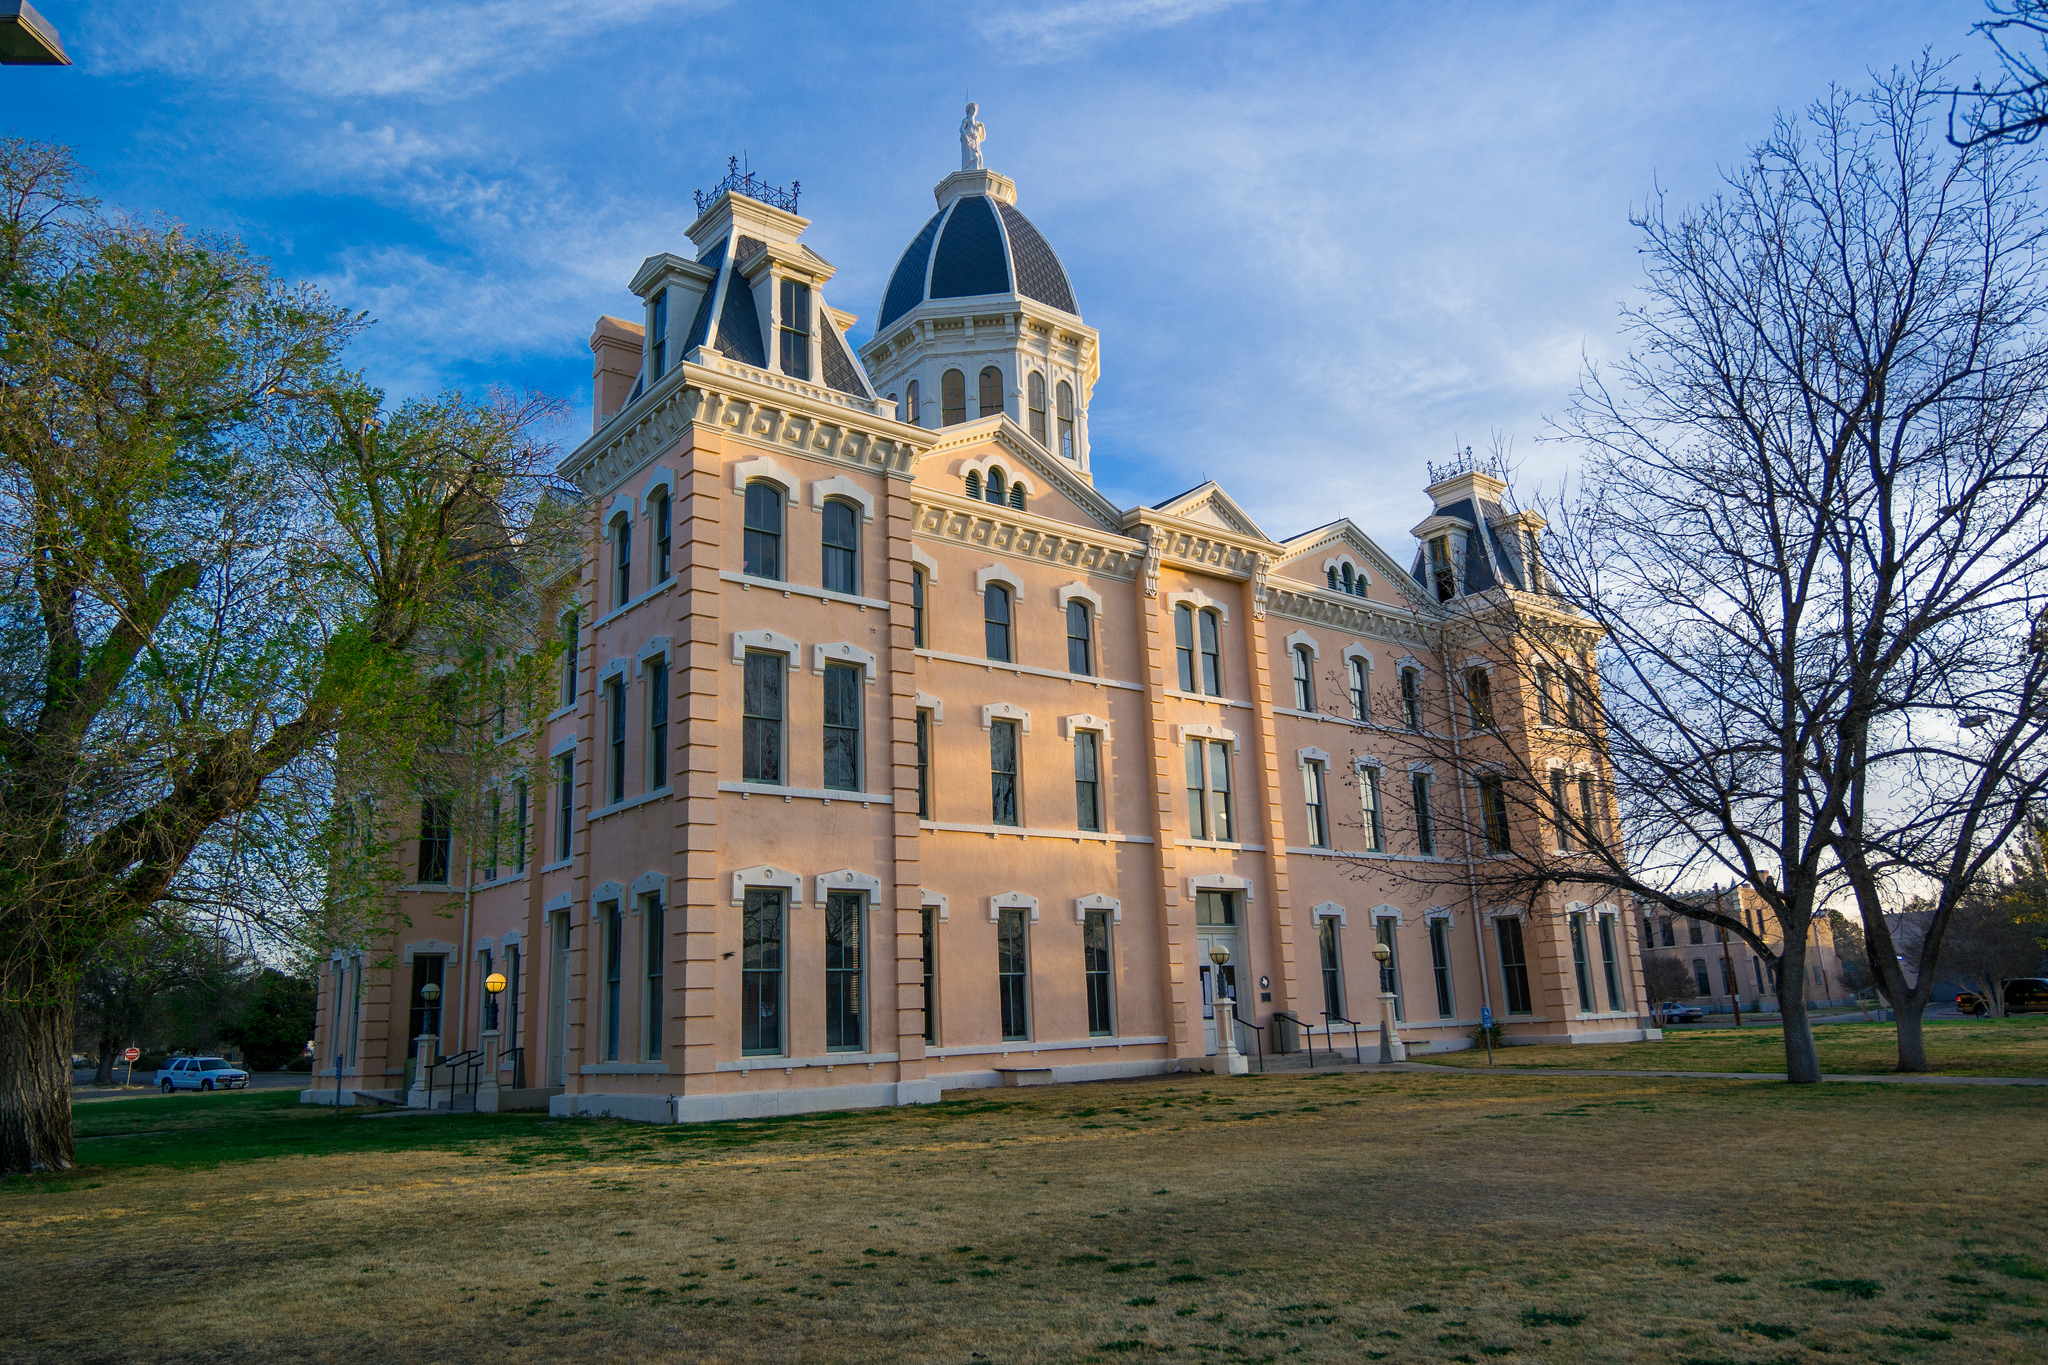 The Presidio County Courthouse in Marfa, TX. (Nan Palmero via Flickr. CC BY 2.0)